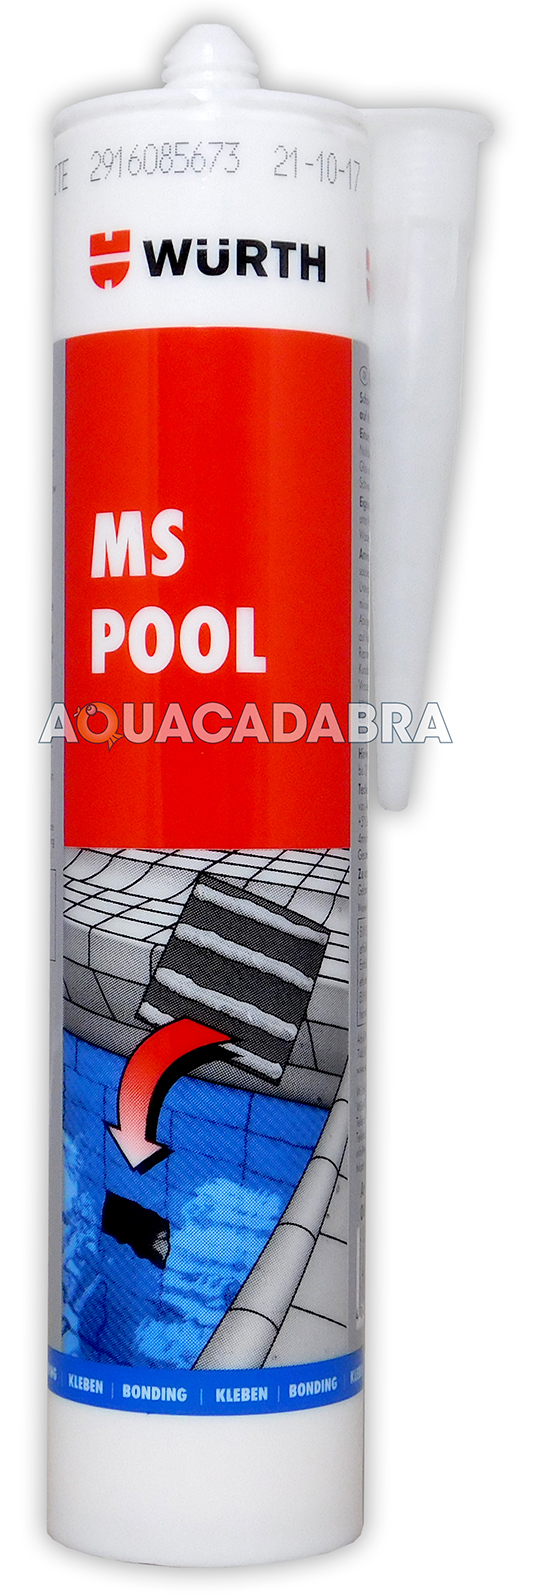 Wurth Ms Pool Adhesive Underwater Seal Tile Glass Metal